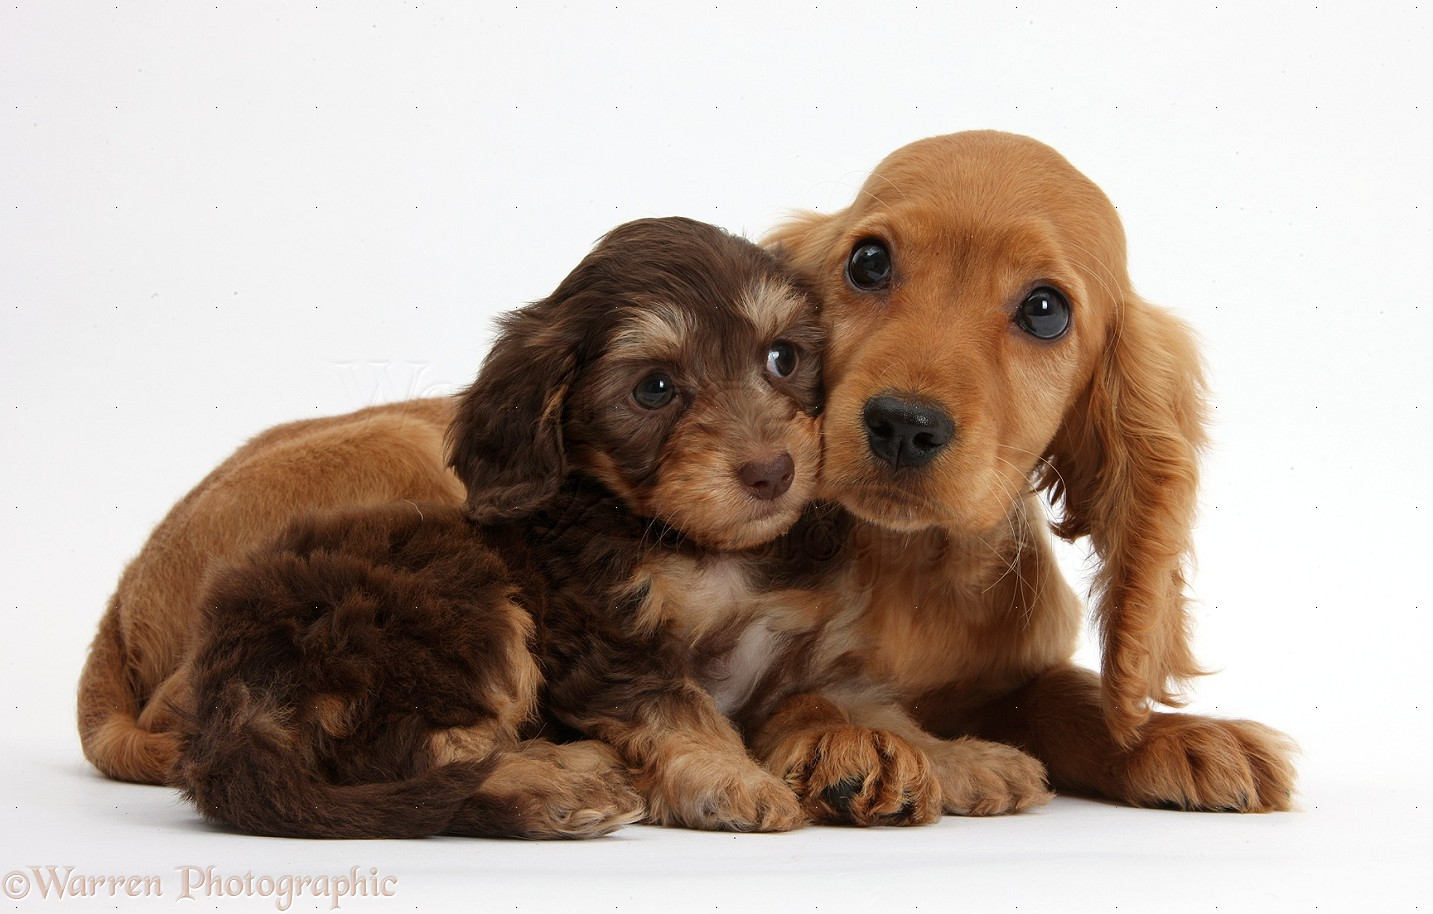 Cute American Cocker Spaniel Puppies: Cute Cute Daxiedoodle And Golden Cocker Spaniel Puppies Breed